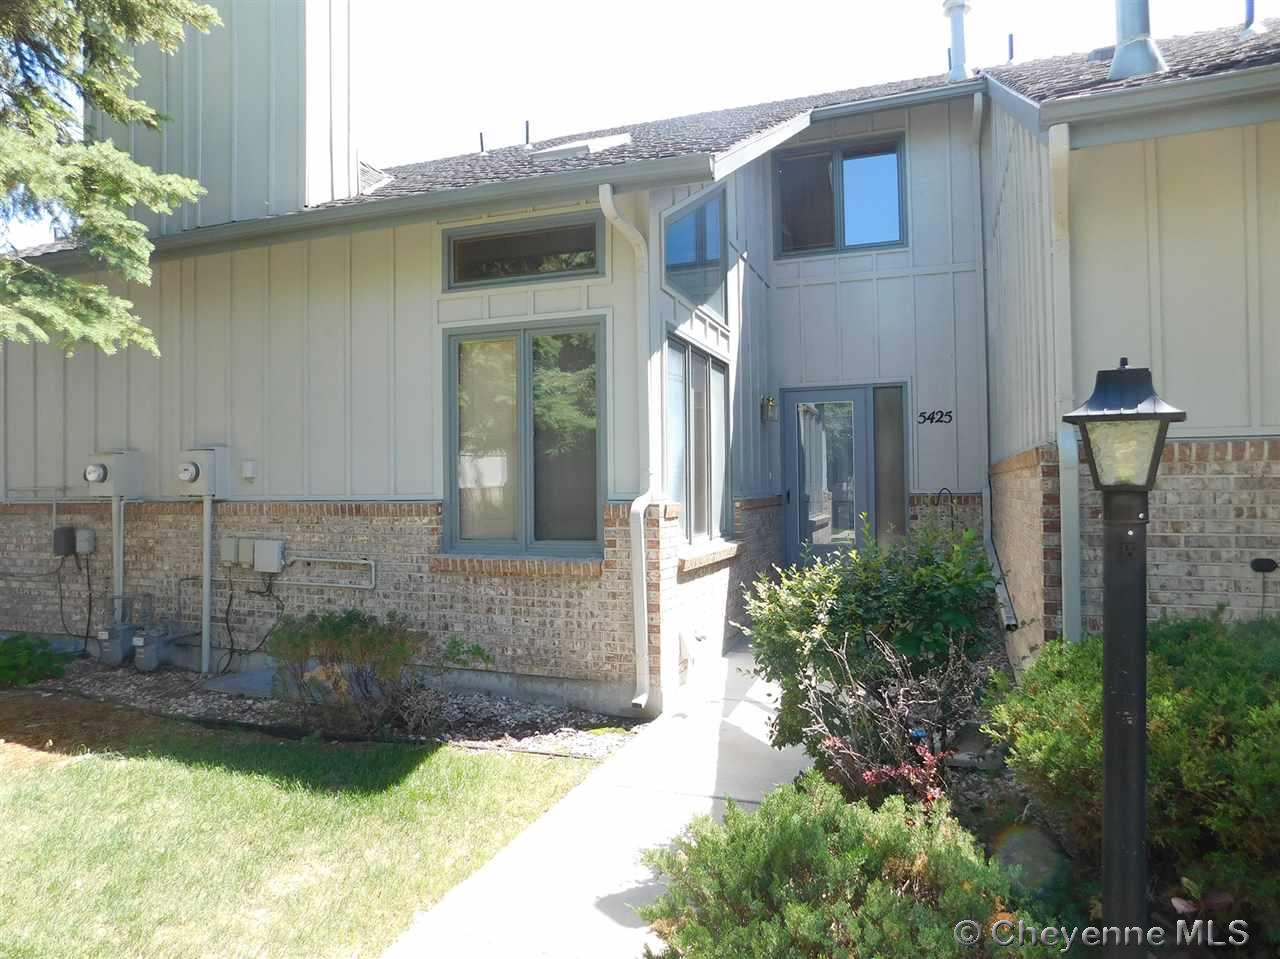 Single Family Home for Sale at 5425 Hynds Blvd Cheyenne, Wyoming United States